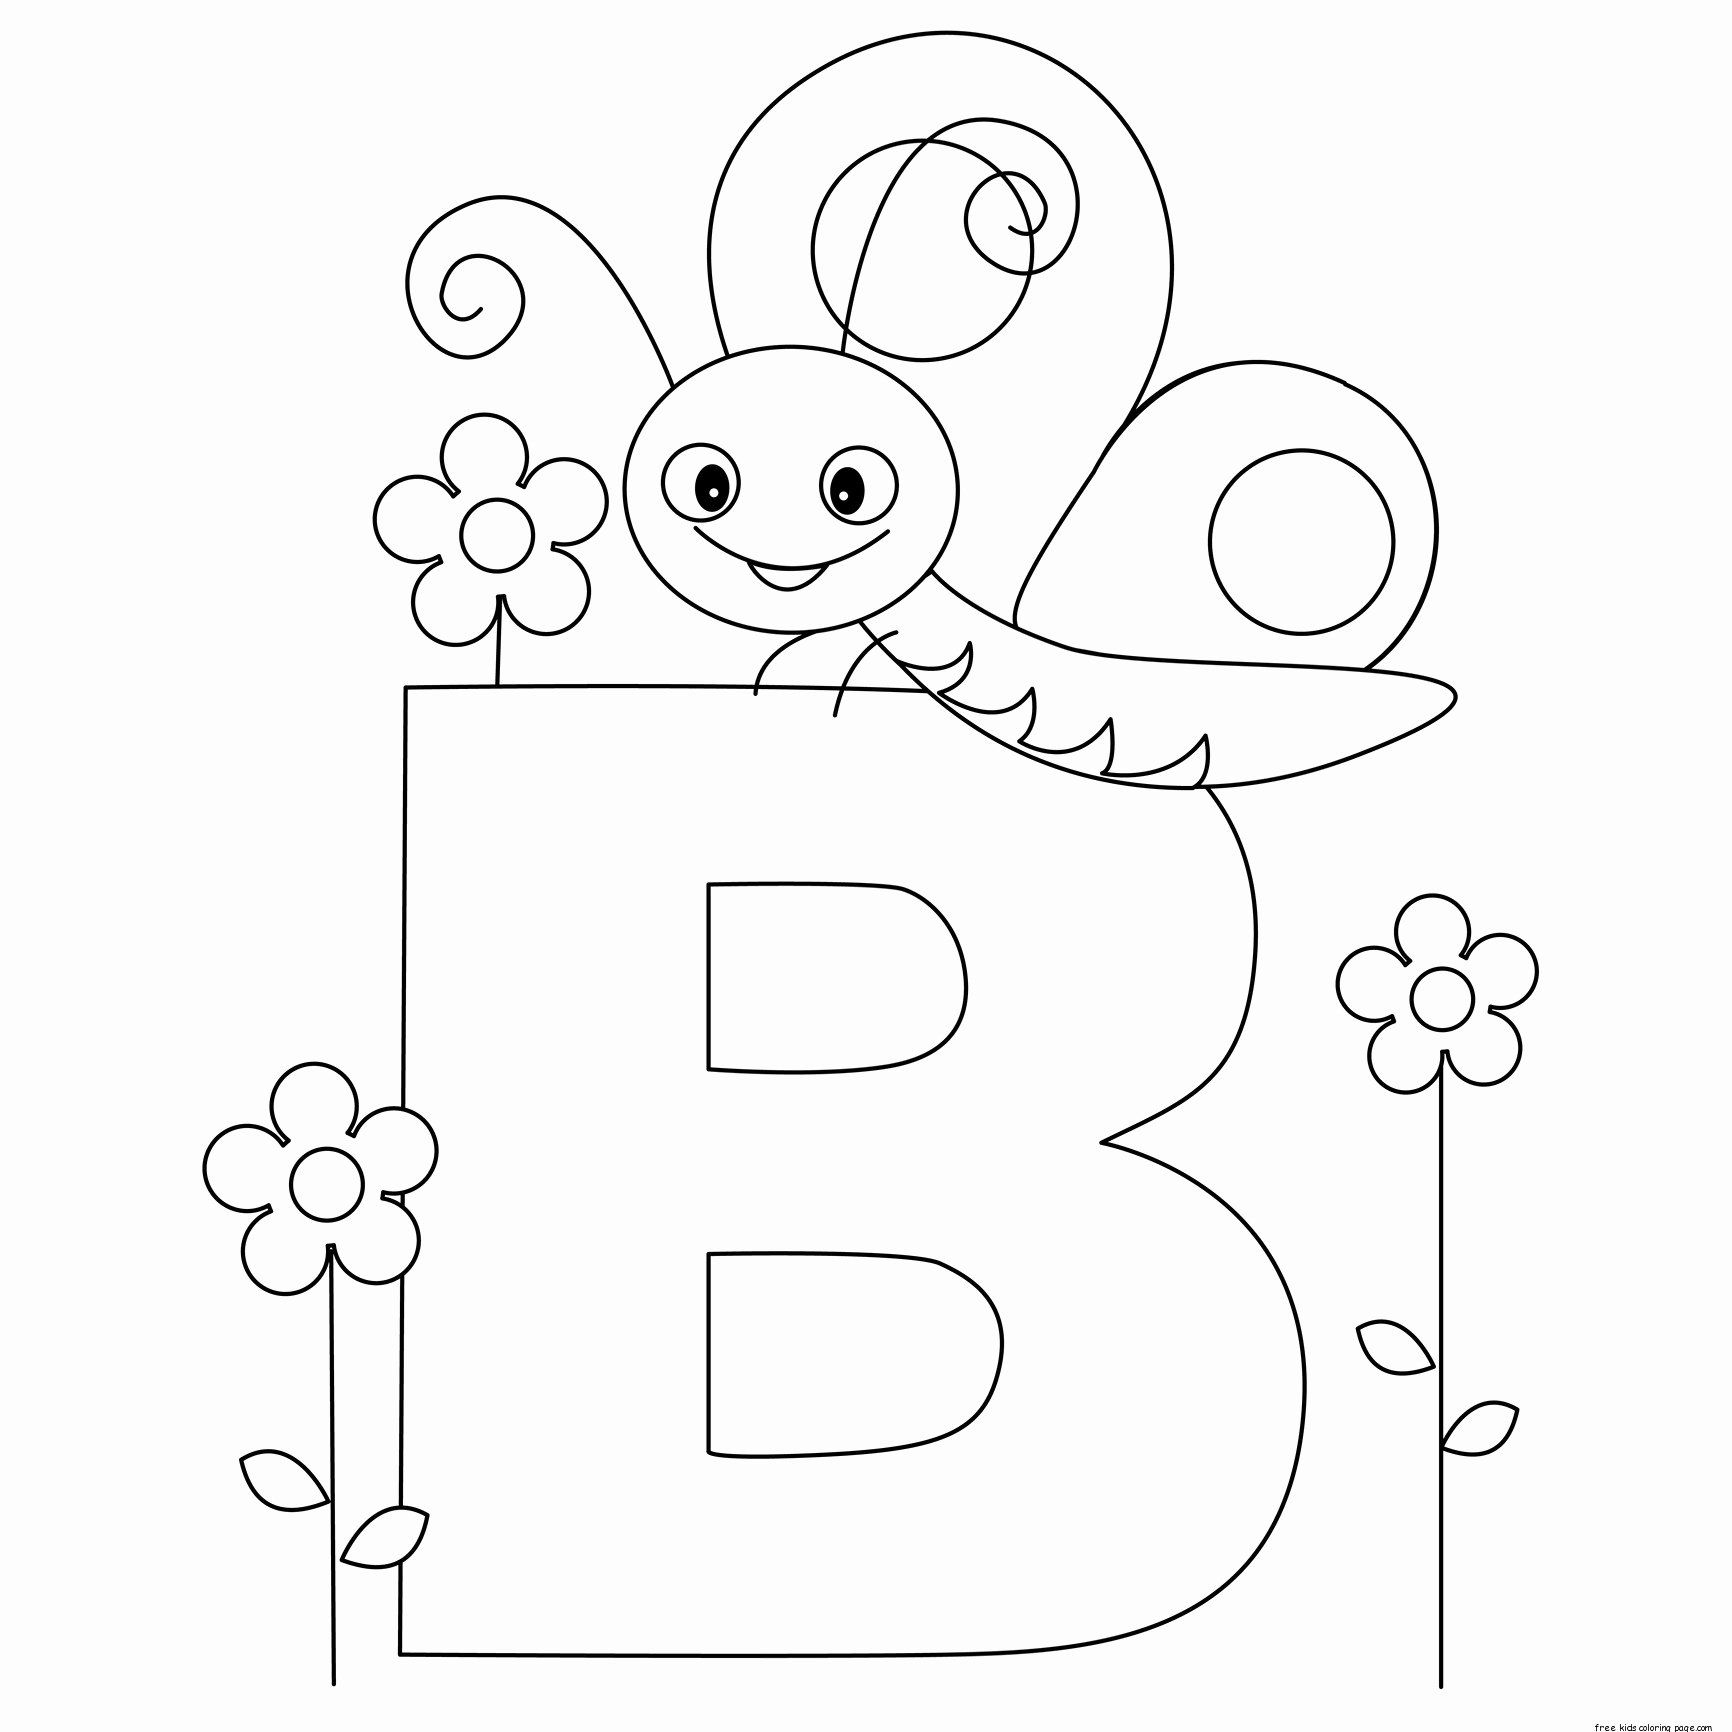 Printable Alphabet Coloring Pages | Haramiran with regard to Alphabet Coloring Worksheets For Kindergarten